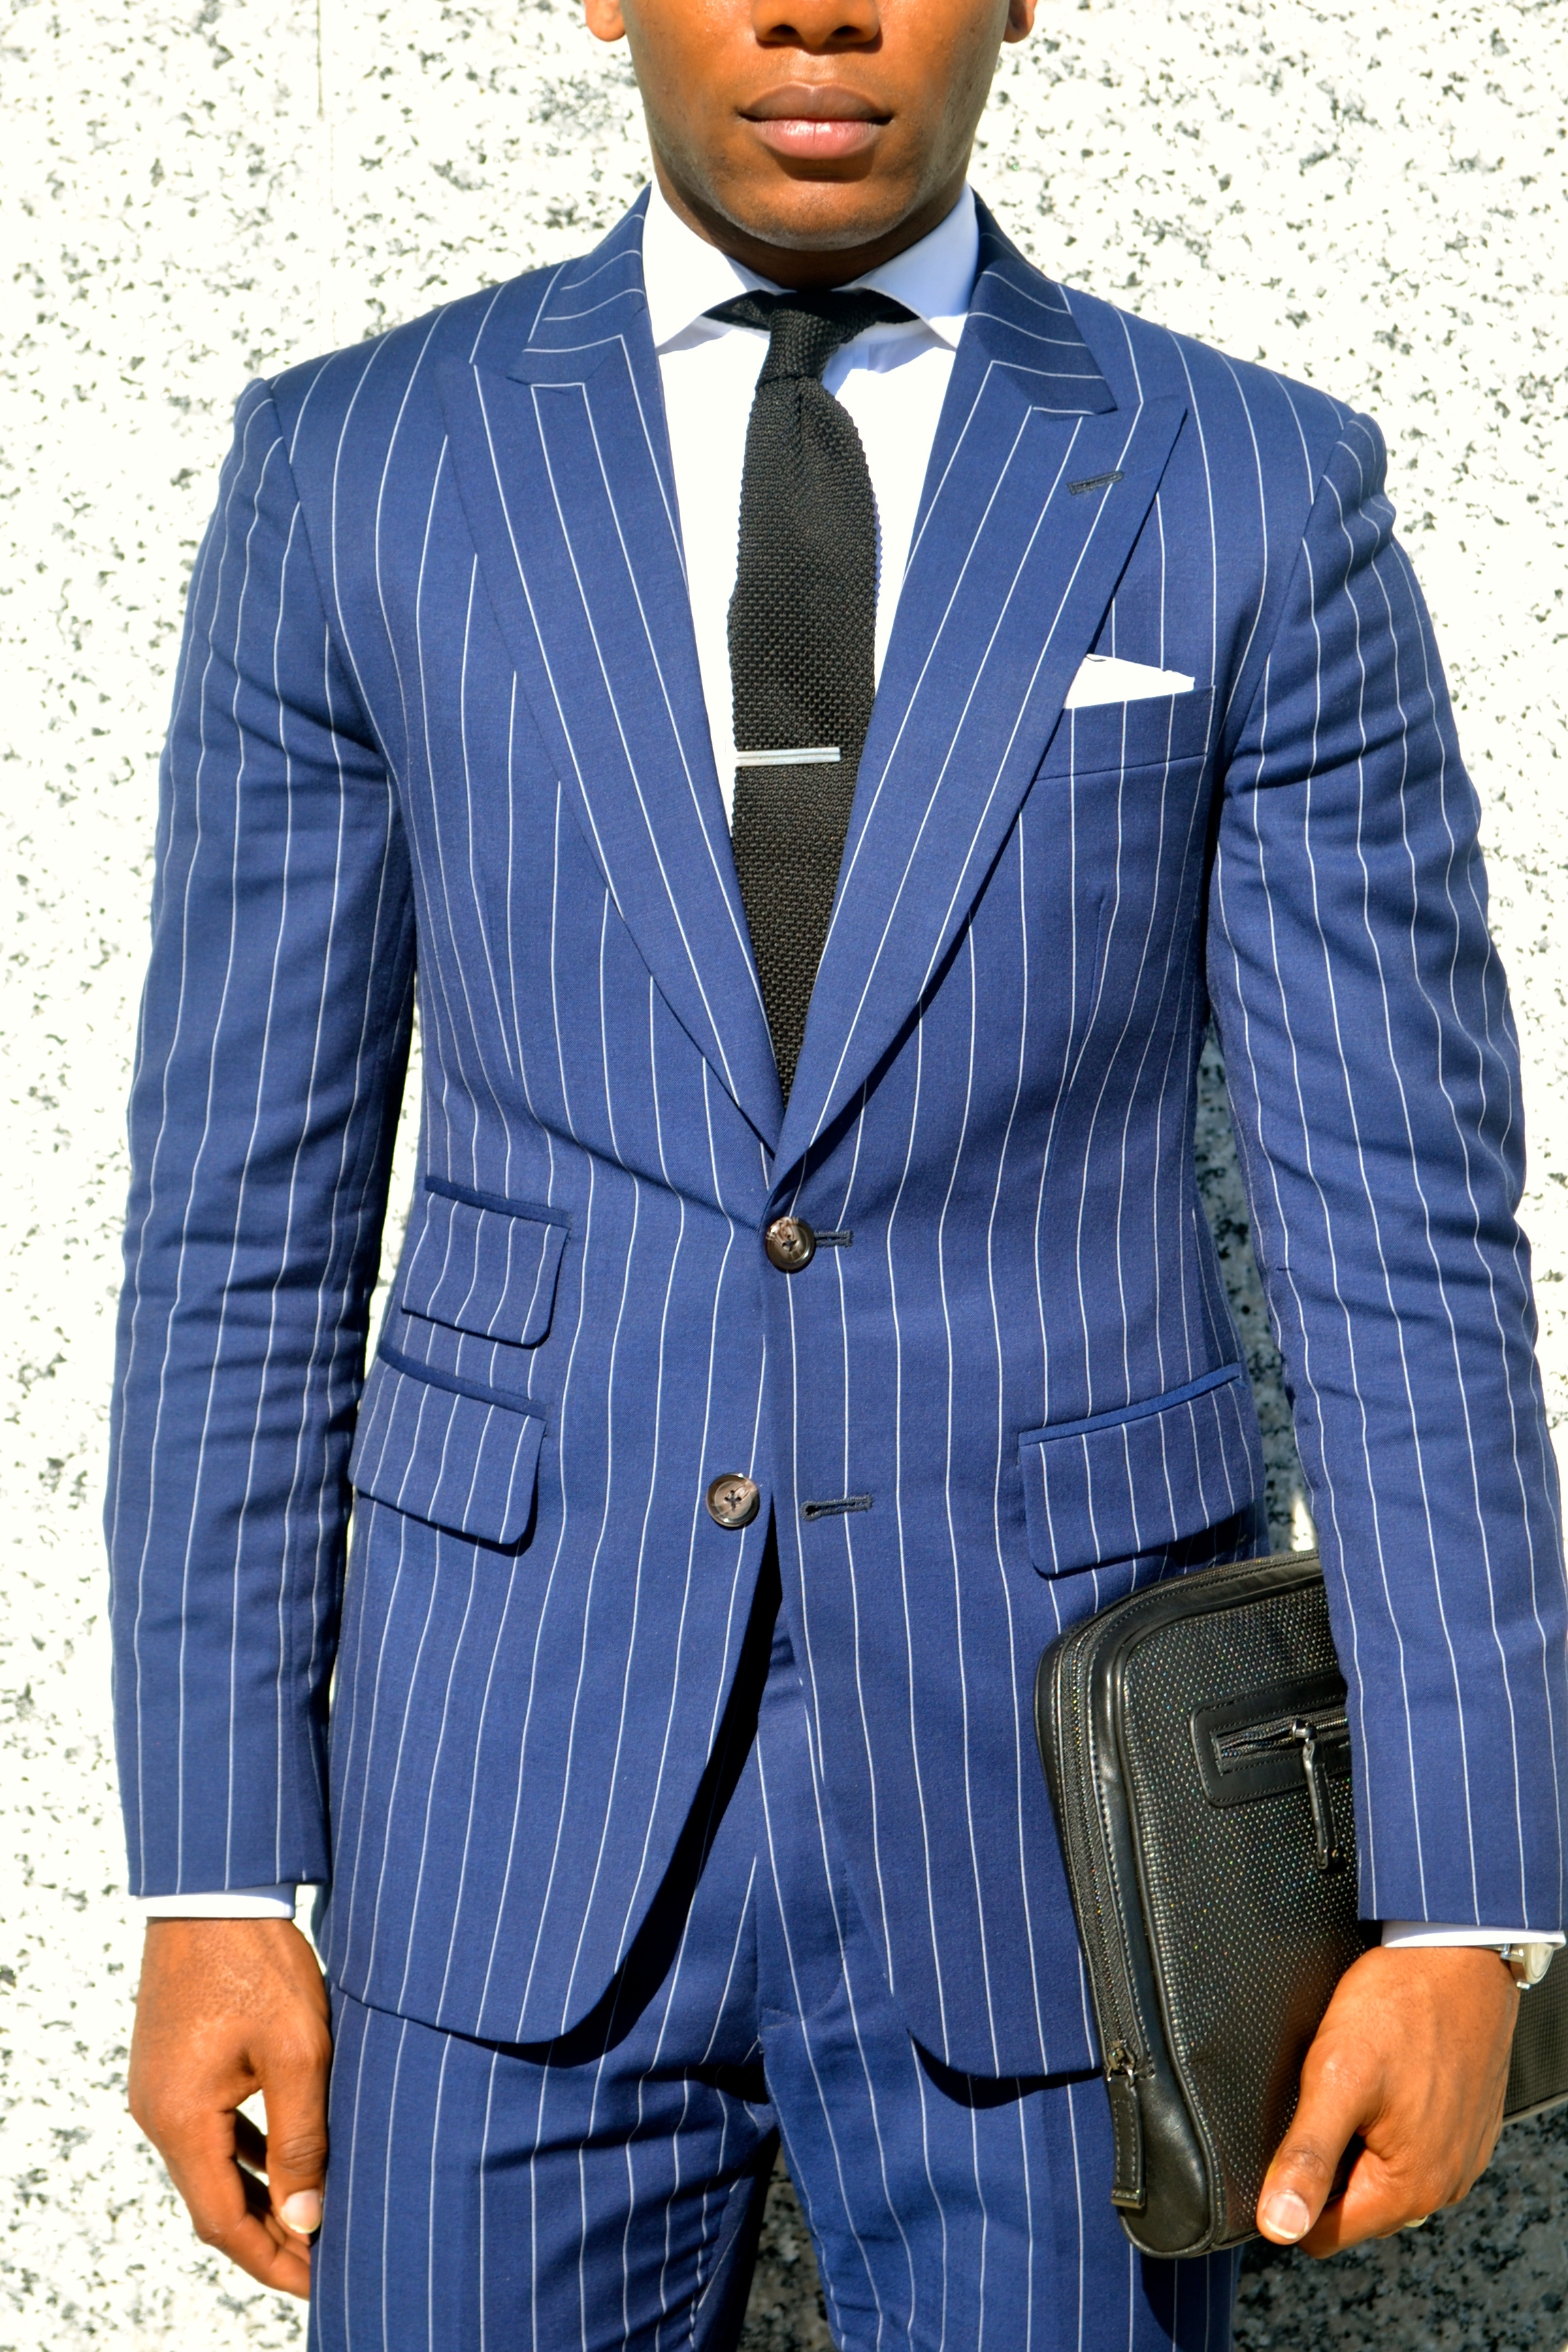 Imparali Custom Tailors Chalk Striped Edinburgh Suit